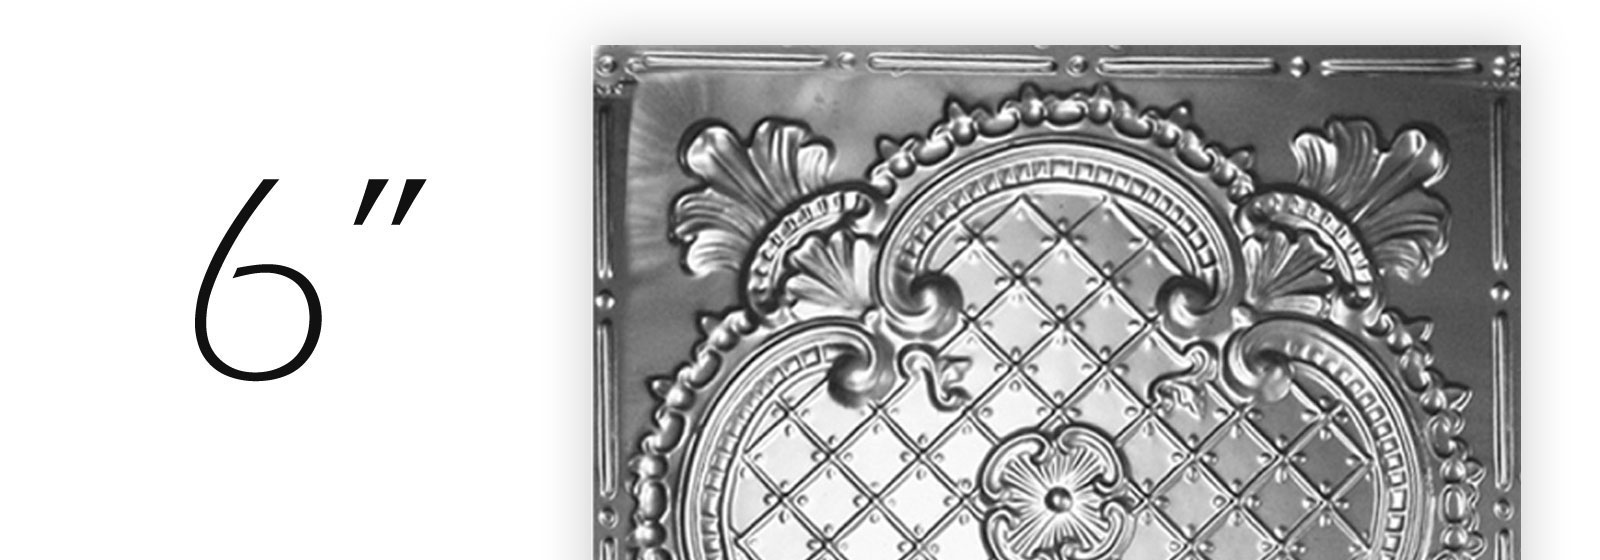 Tin ceiling tiles 6 inch pattern shop diy shop all 06 pattern now dailygadgetfo Gallery